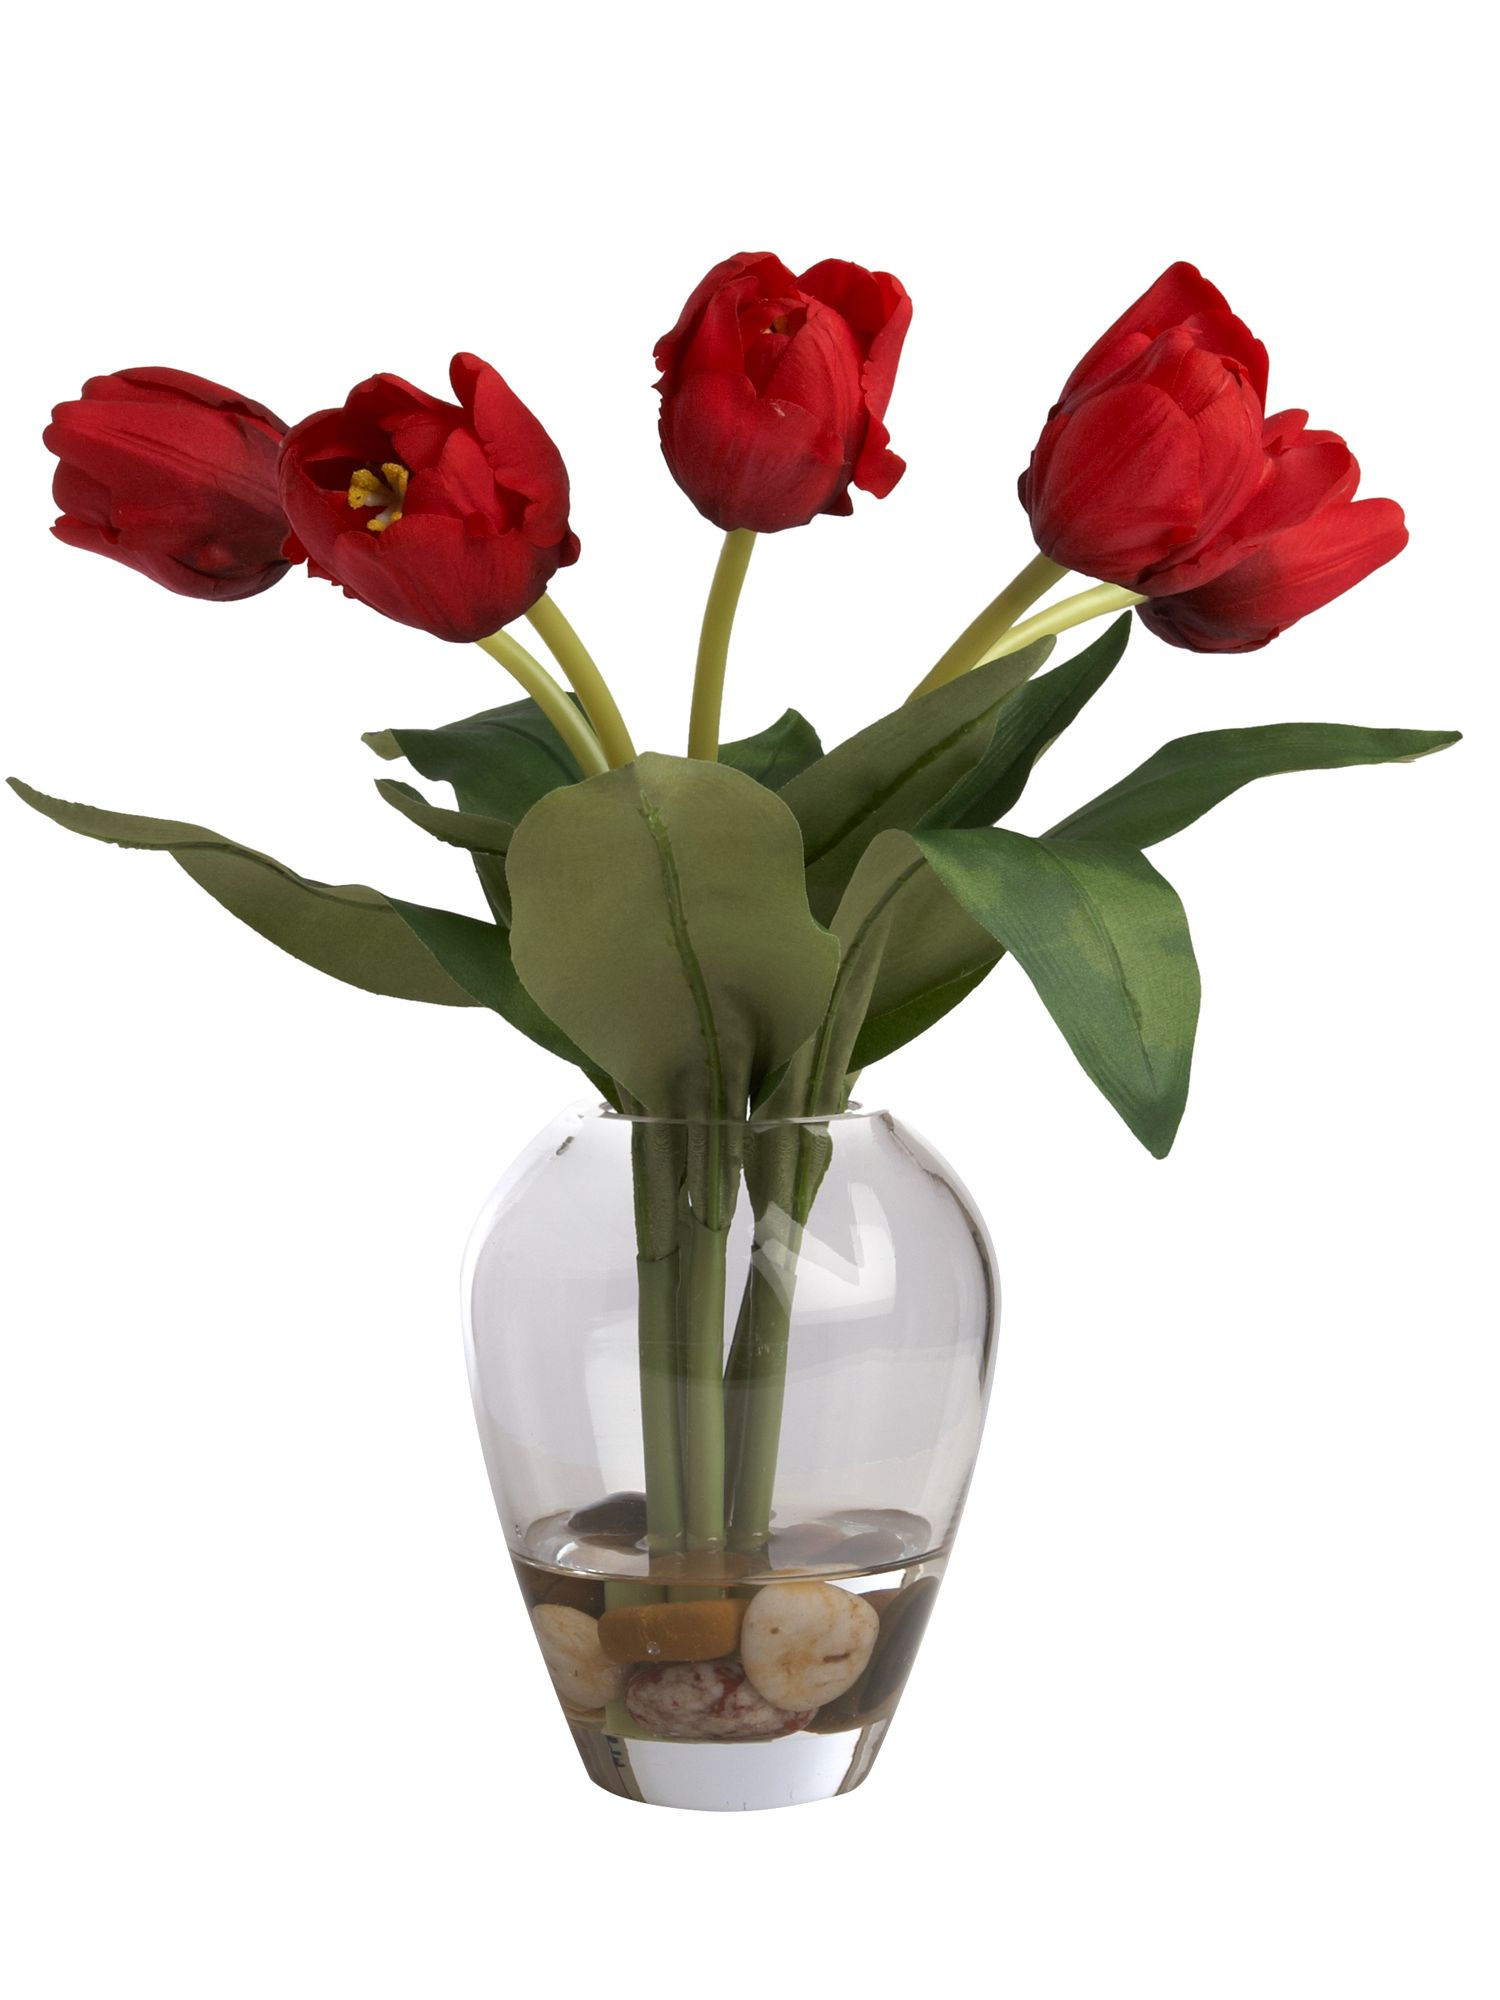 Red Tulips flower arrangement